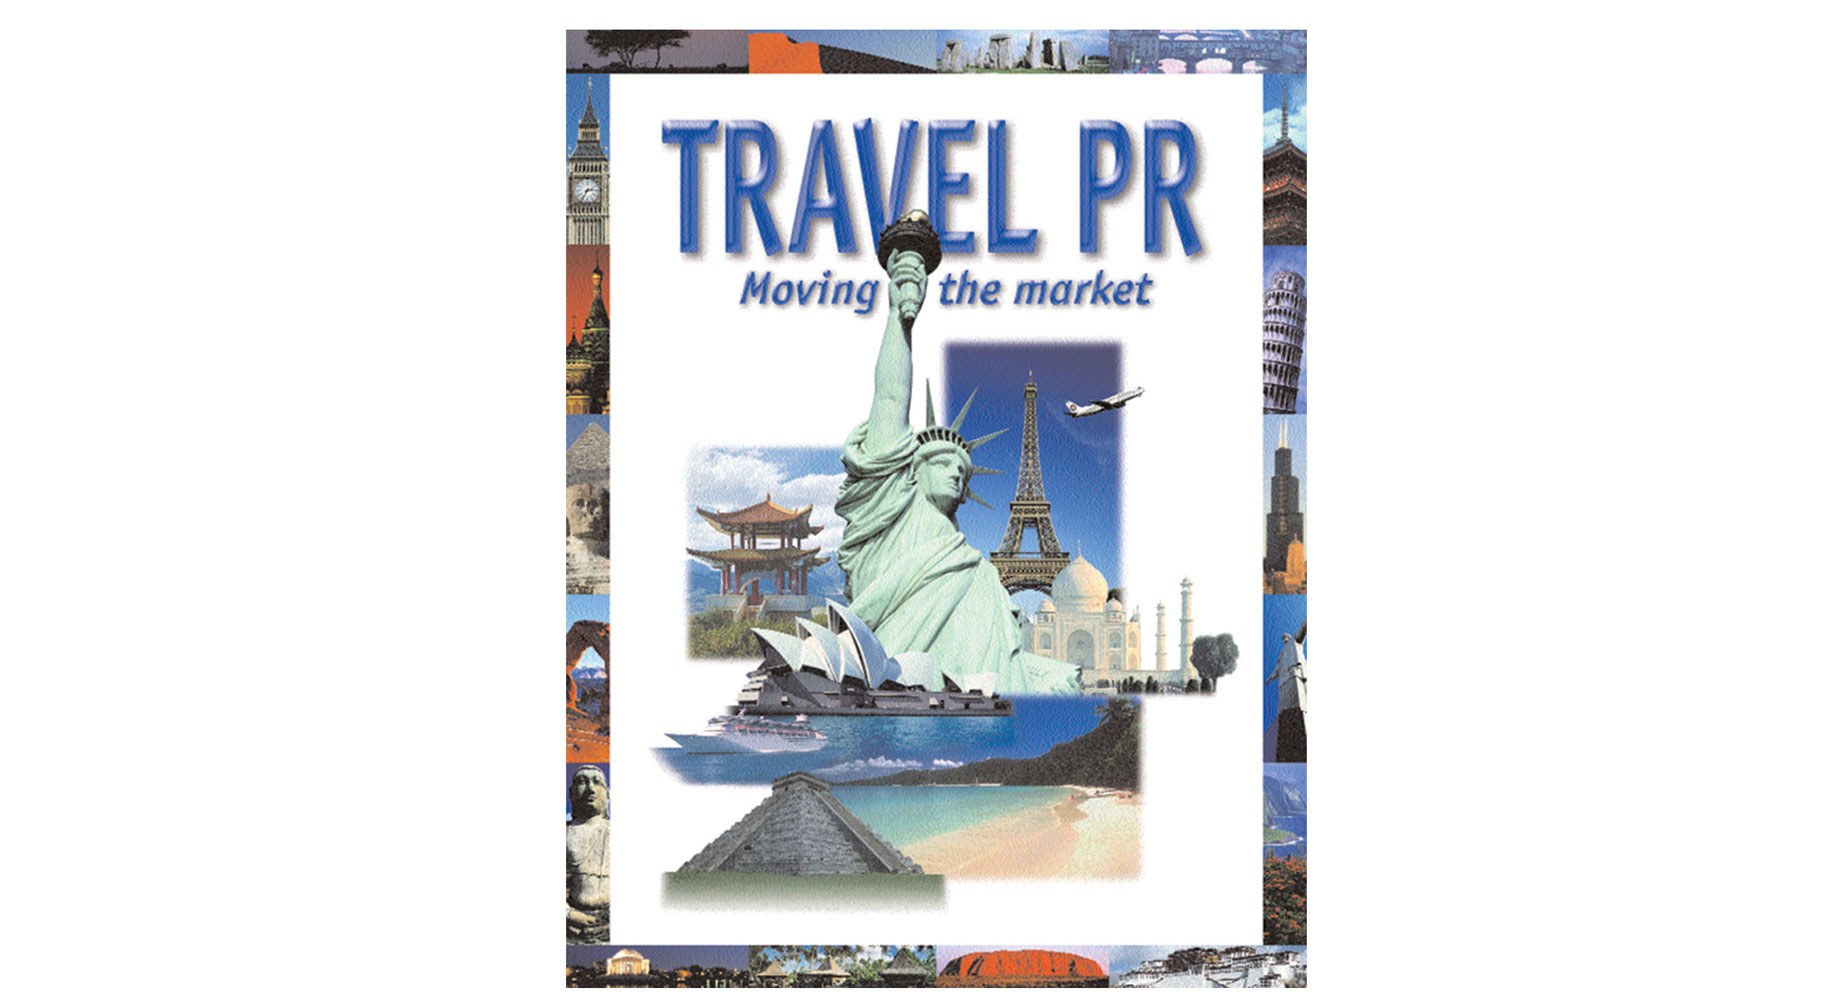 Professional Services travel brochure design